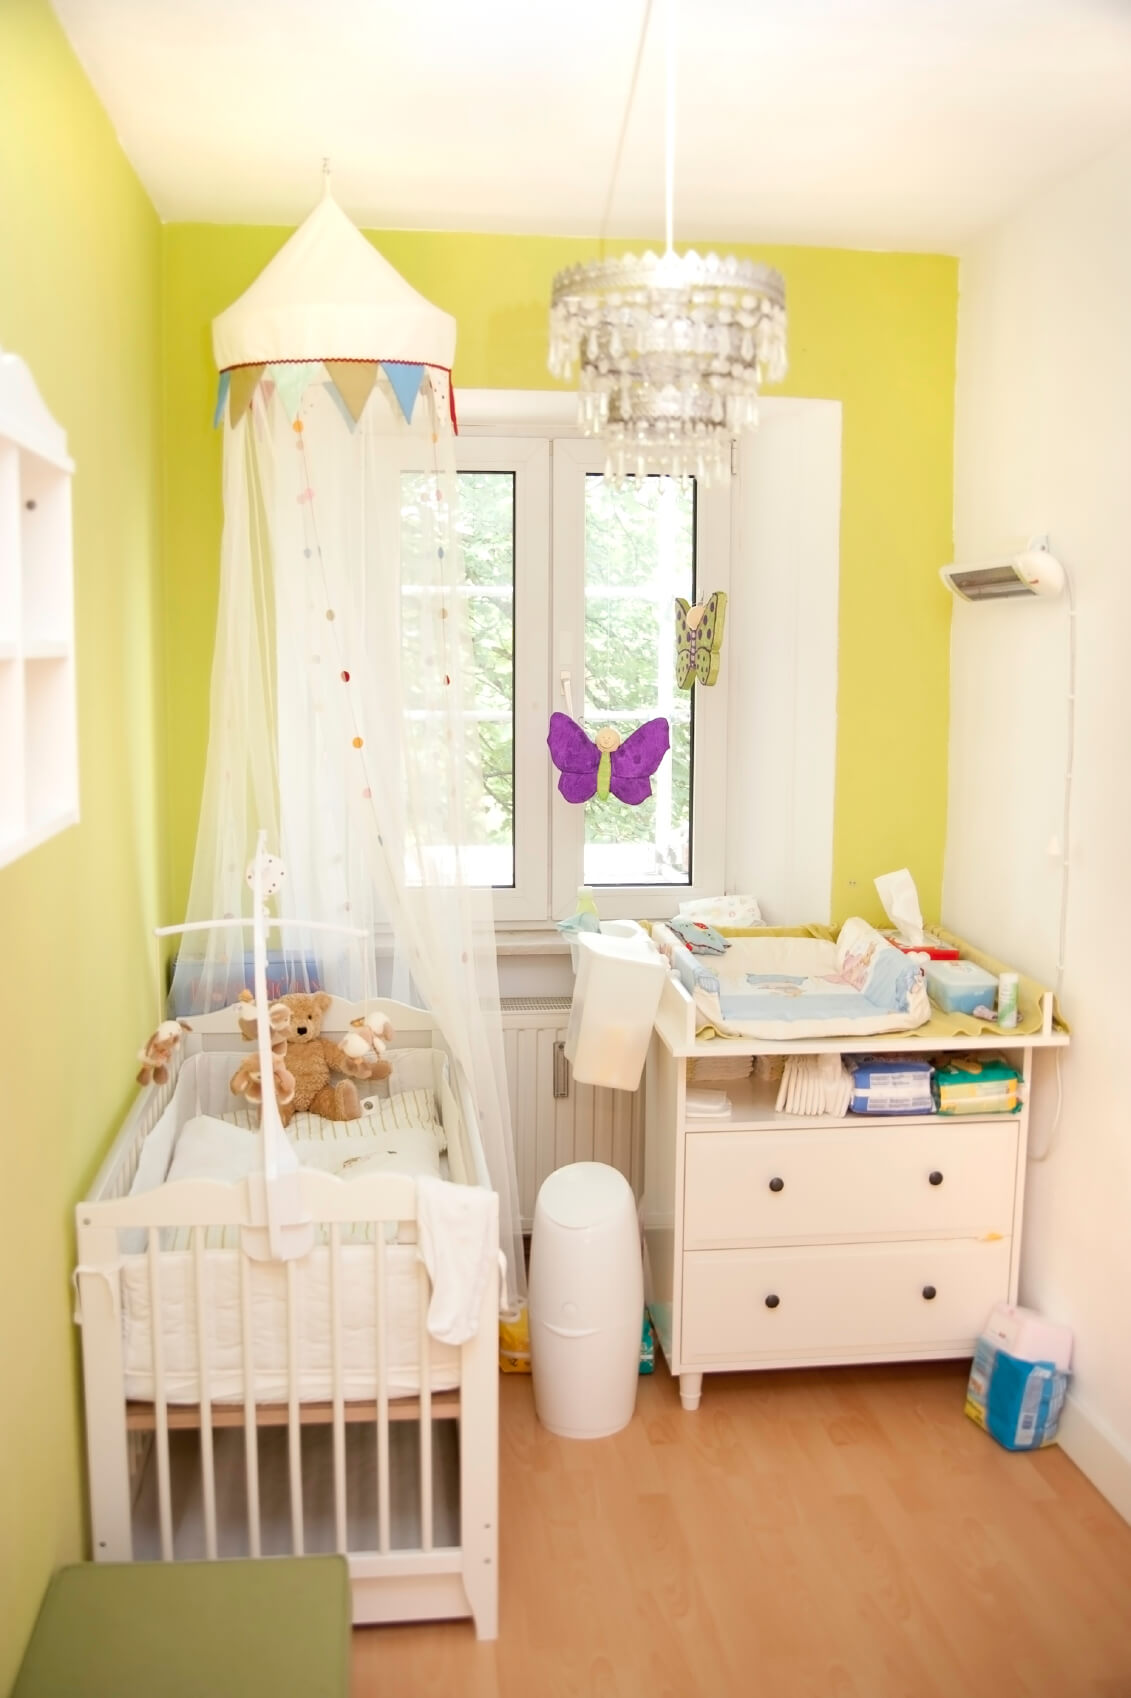 28 neutral baby nursery ideas themes designs pictures Baby designs for rooms